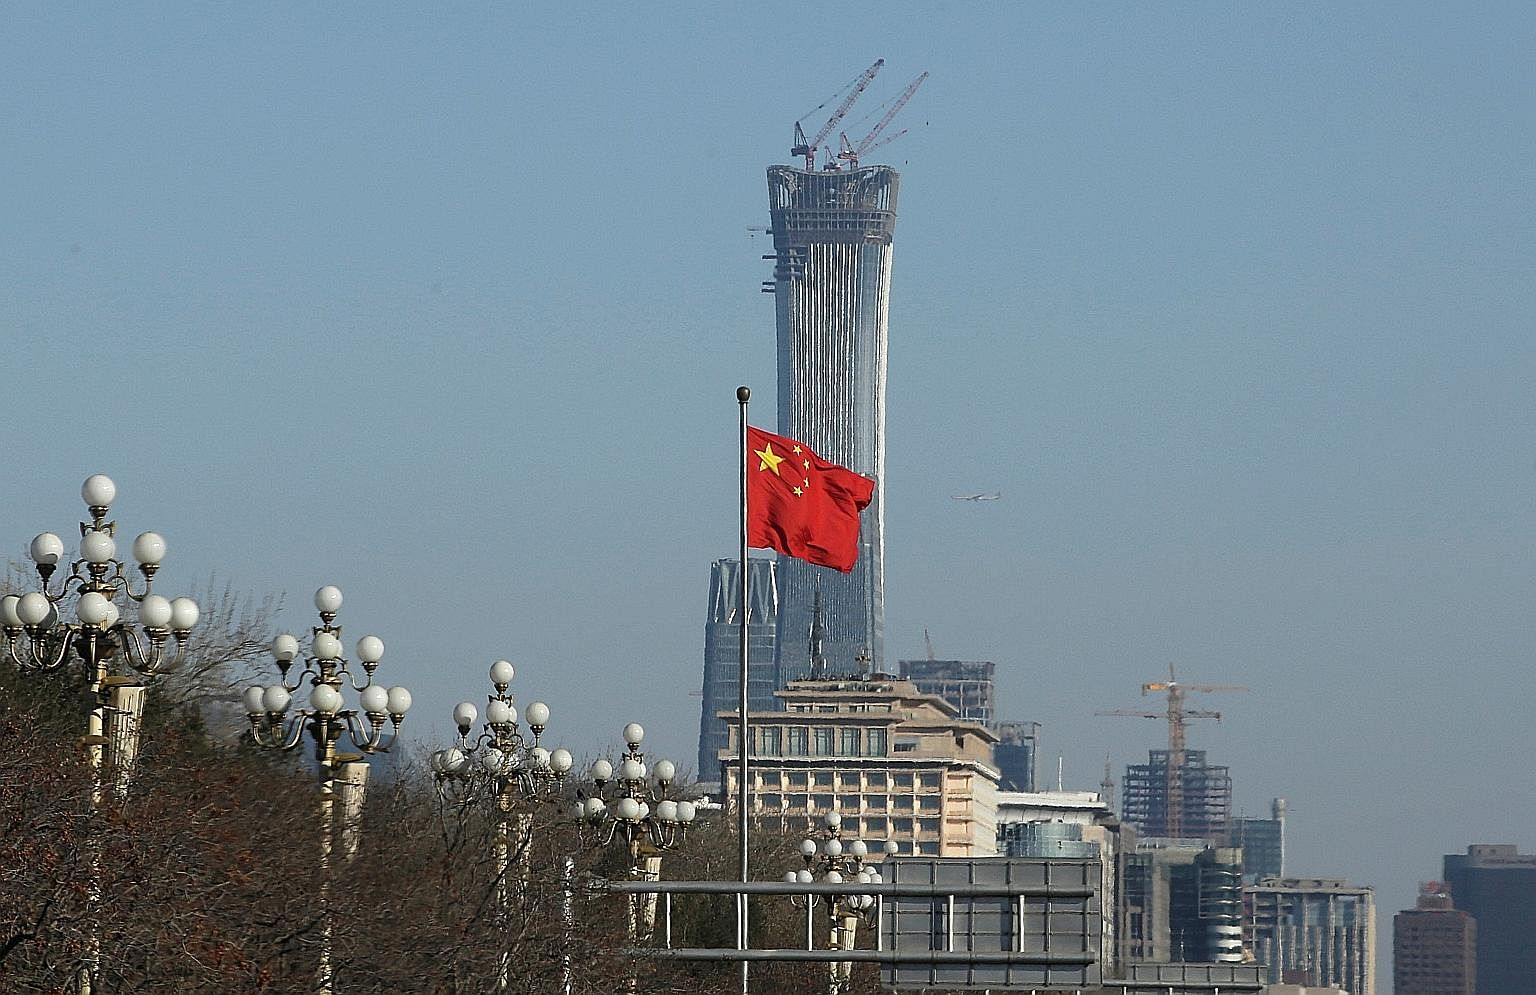 This year is the 40th anniversary of China opening its markets and experimenting with capitalist reforms. How the CCP tells the story of the country's development will be critical.